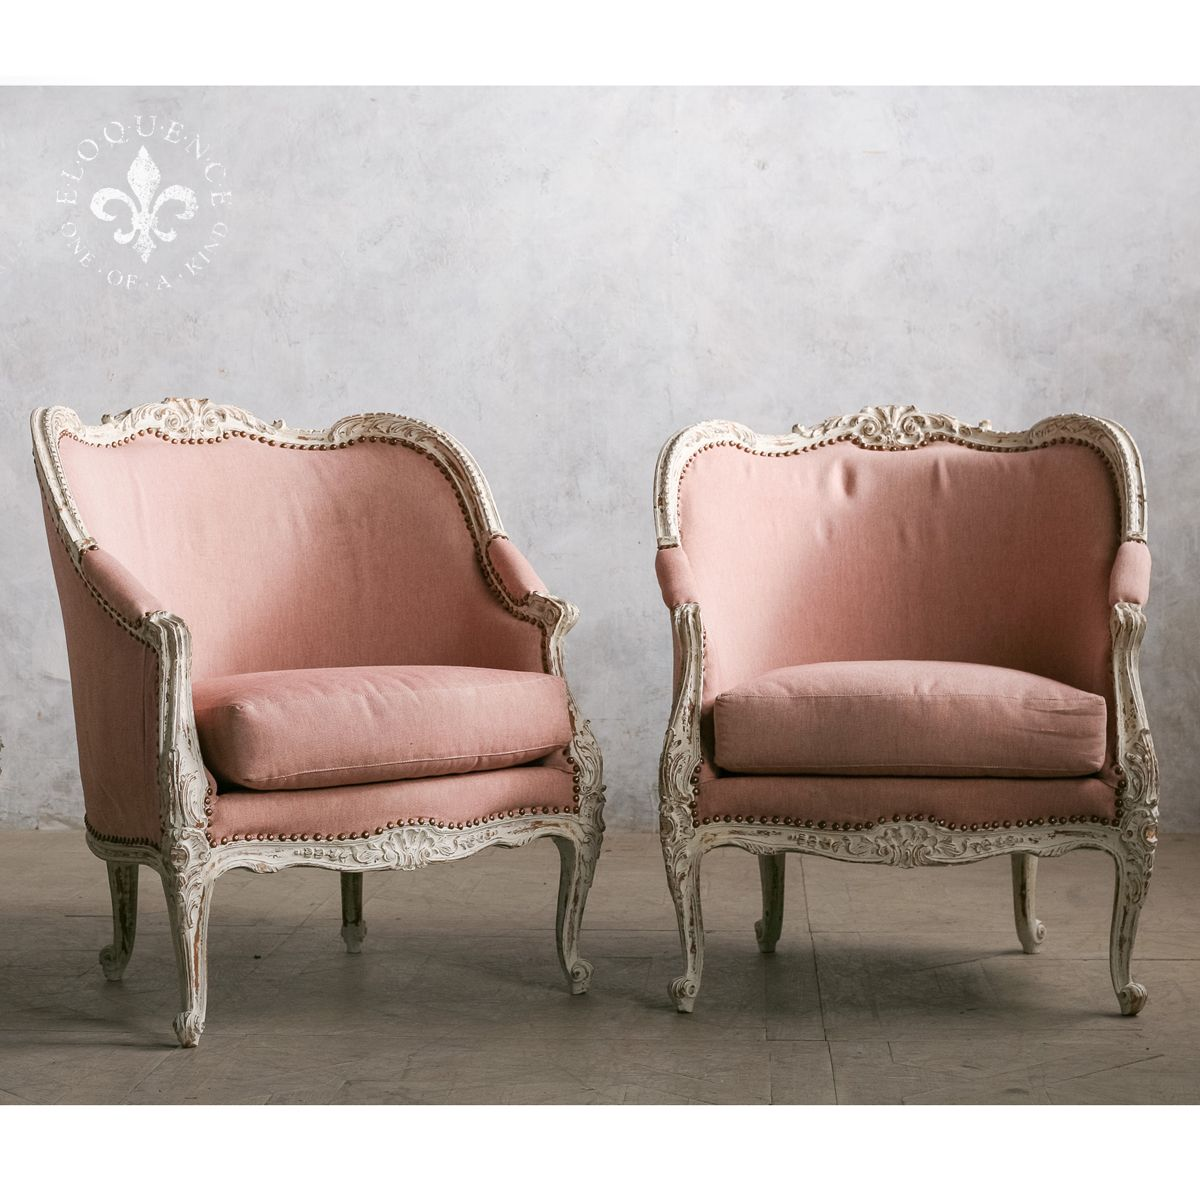 Vintage French European Pink Bergere Chairs